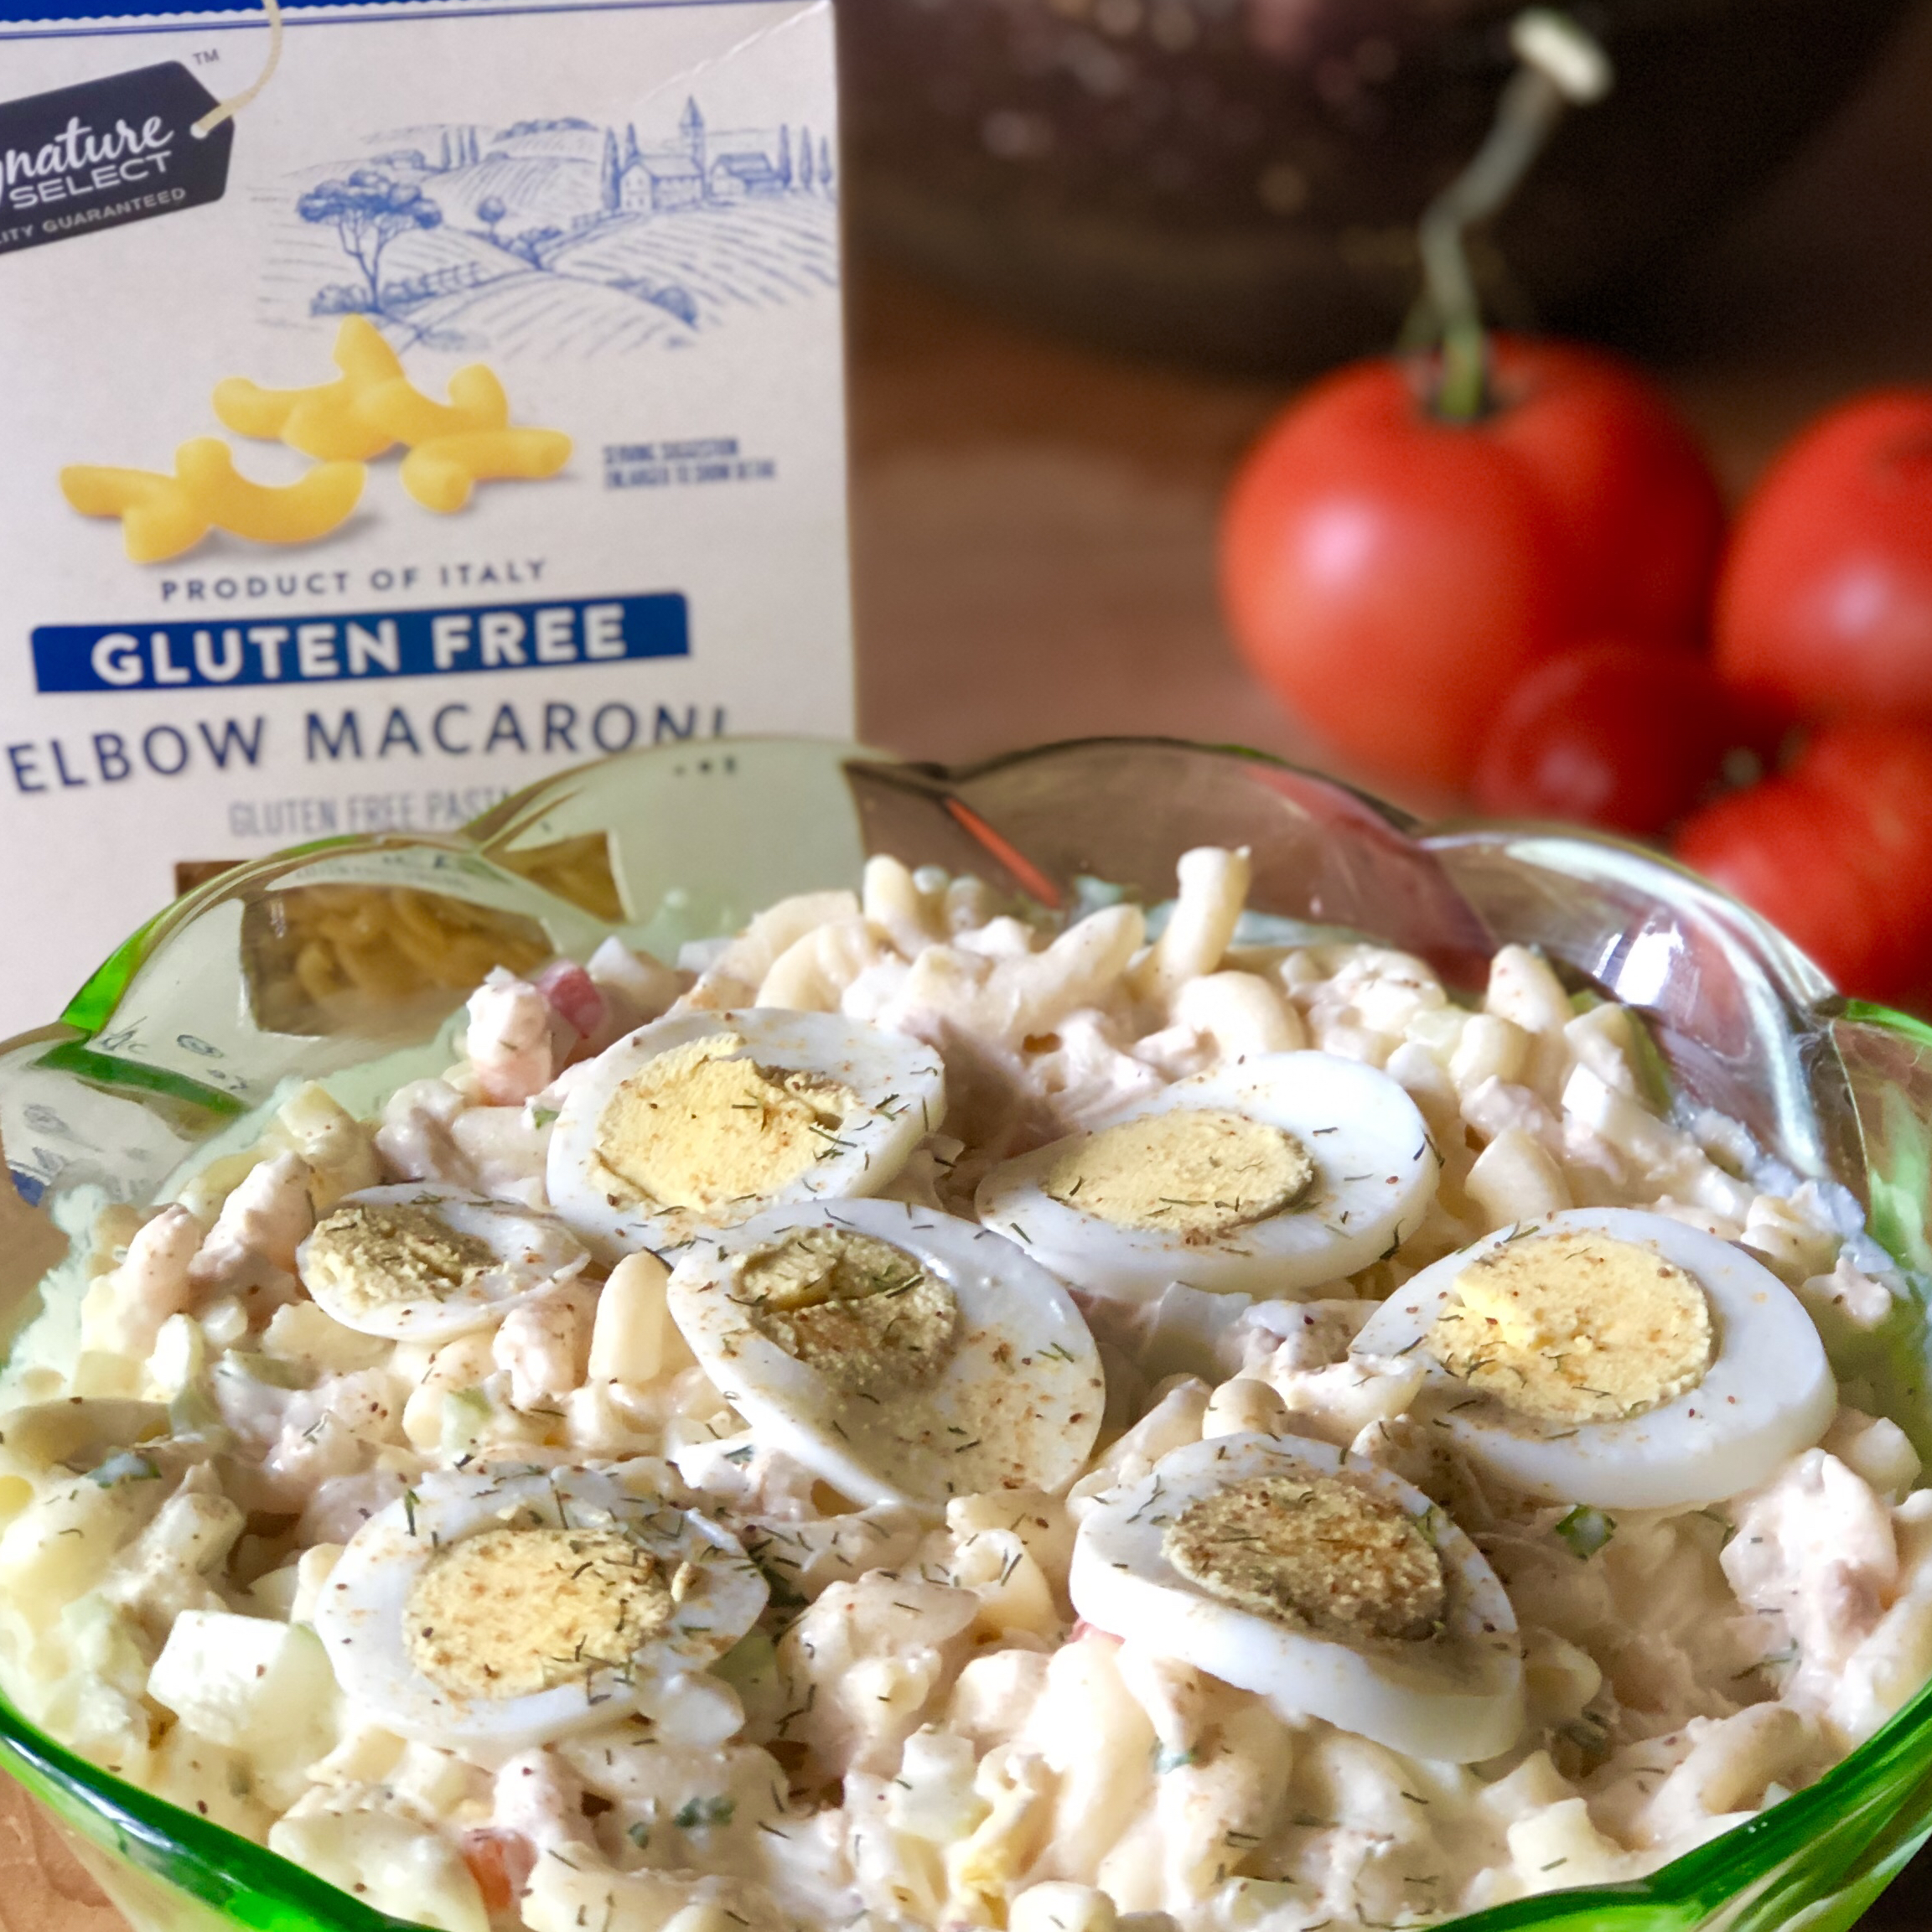 My Mom's Awesome Macaroni Salad (enough to feed a crowd!) Susan Swift Willey